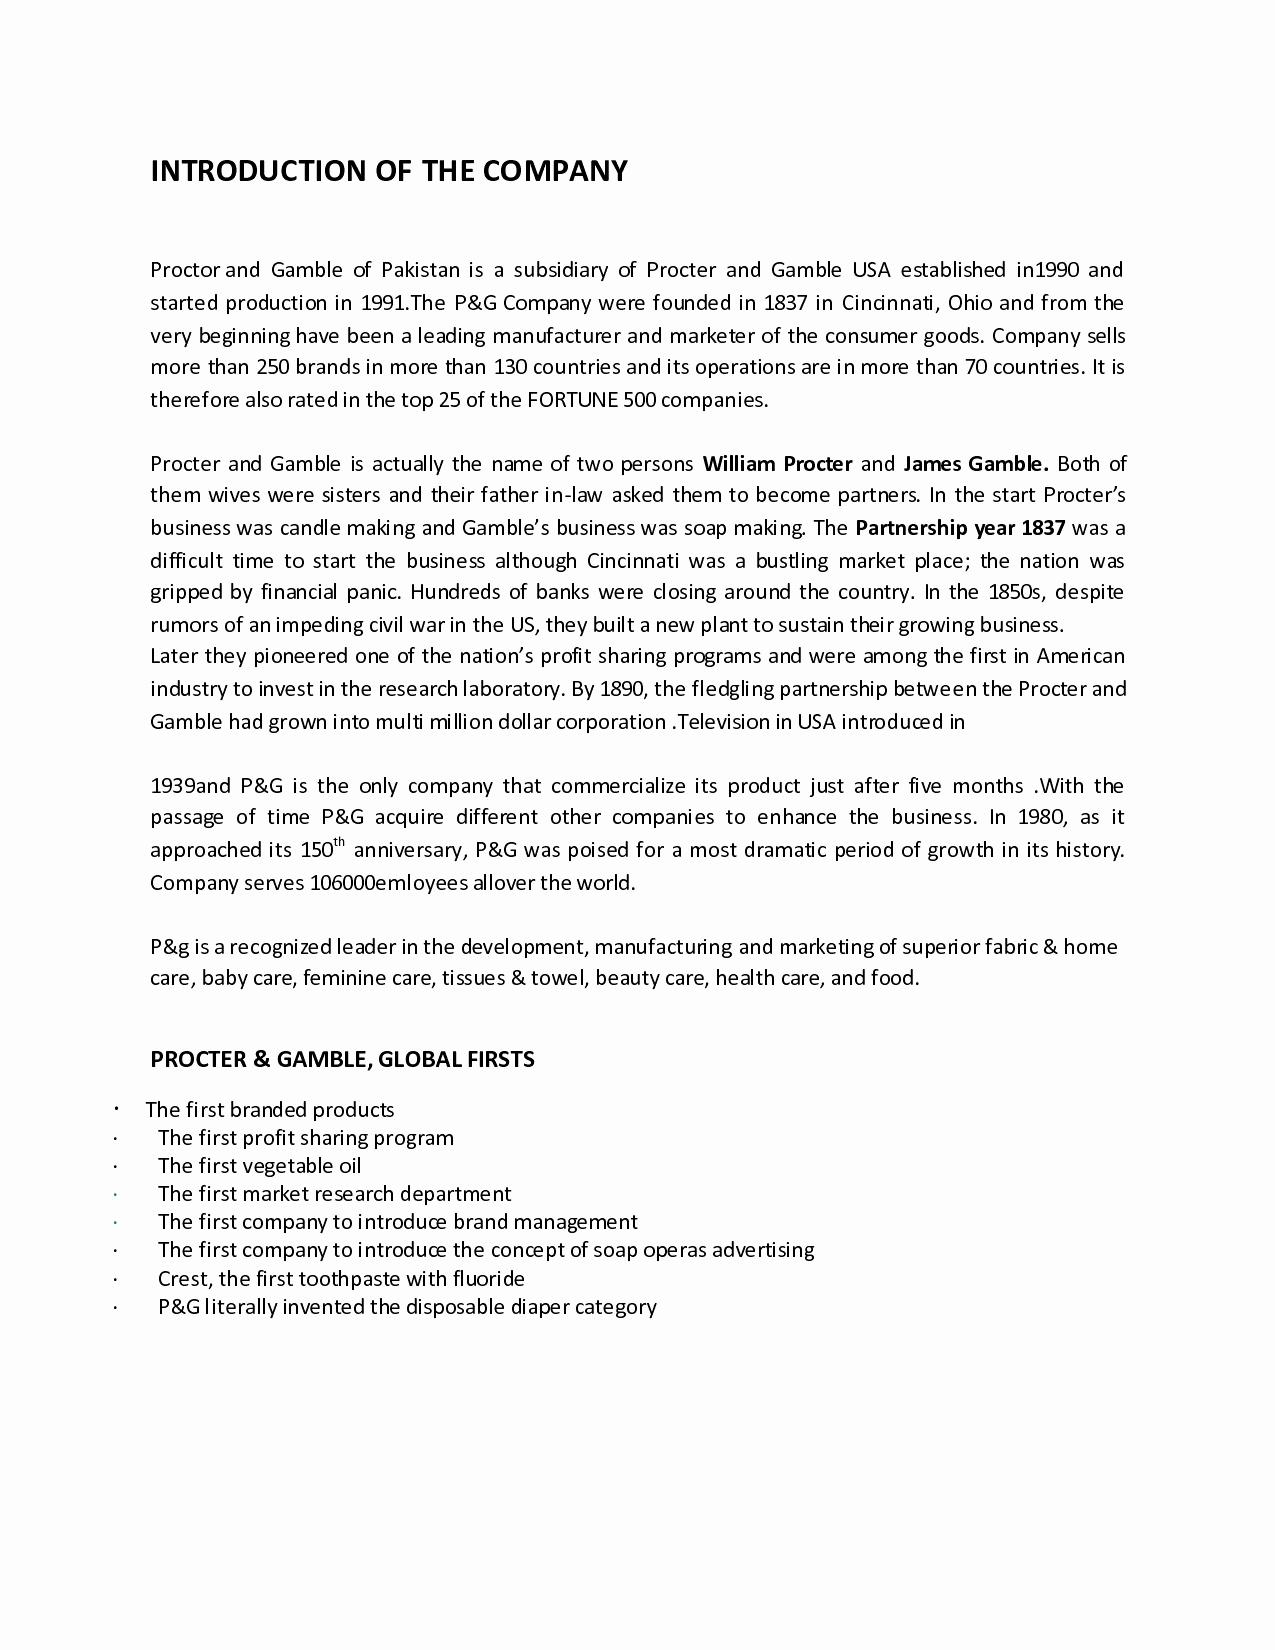 Letter Of Introduction Template - Excellent Cover Letter Examples Luxury New Sample Cover Letter